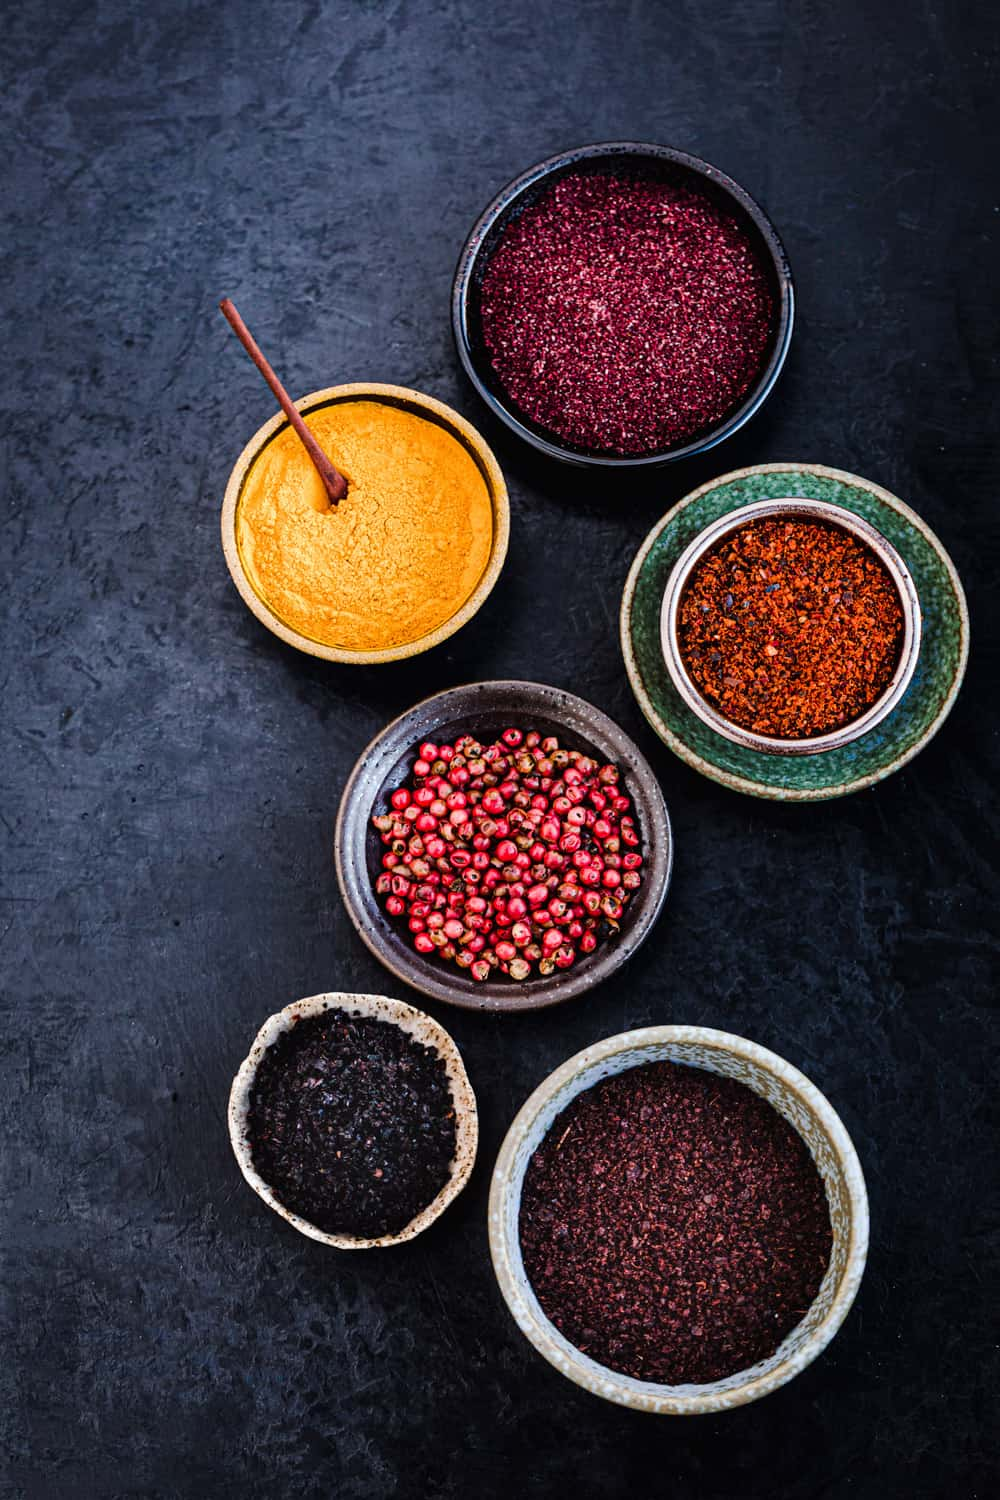 ingredient shot of 6 spices in little bowls on a black background